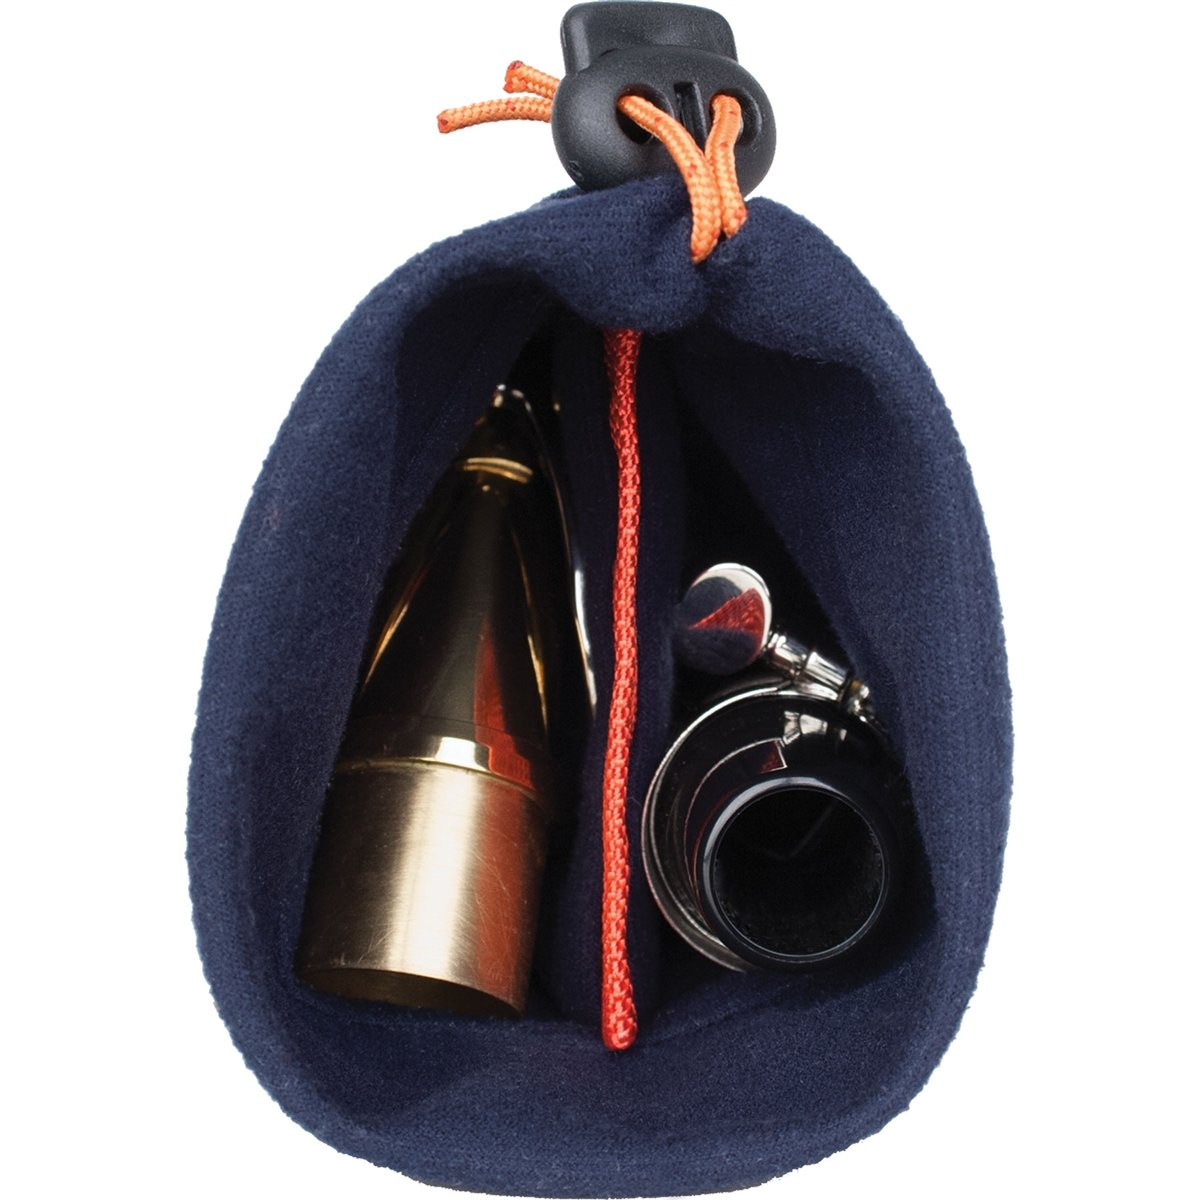 Protec - In-Bell Storage Pouch (for Baritone Saxophone)-Accessories-Protec-Music Elements